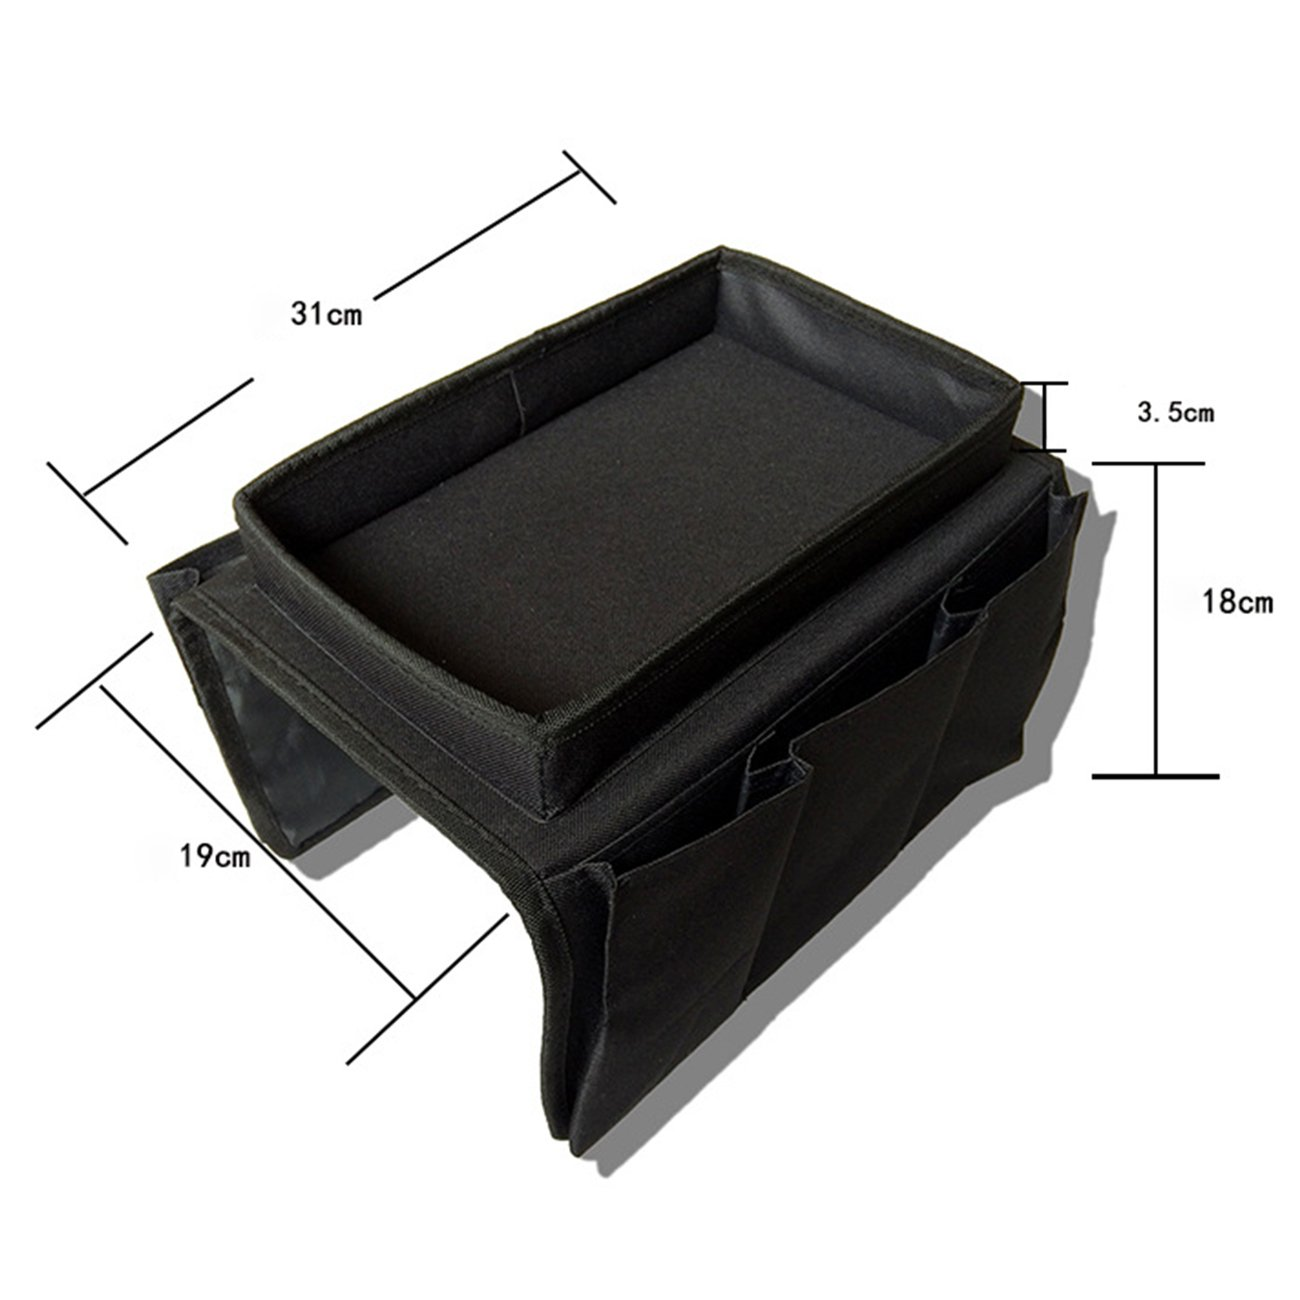 THEE Hanging Storage Armrest Chair Desk Sofa Slipcovers TV Remote Controller Holder Organizer Bag Cabinet Pouch